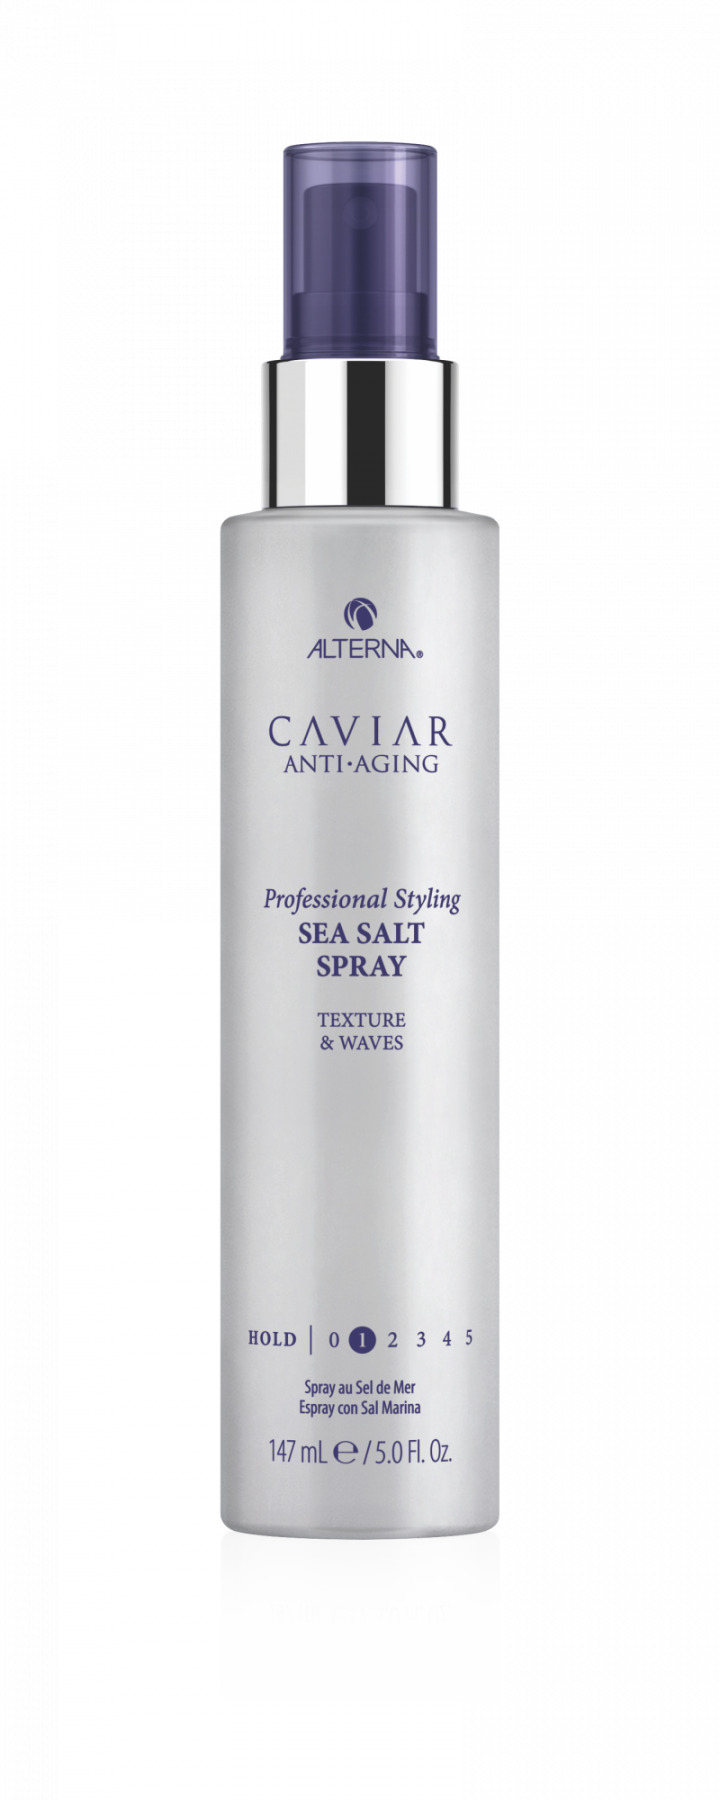 Caviar Anti-Aging PROFESSIONAL STYLING Sea Salt Spray